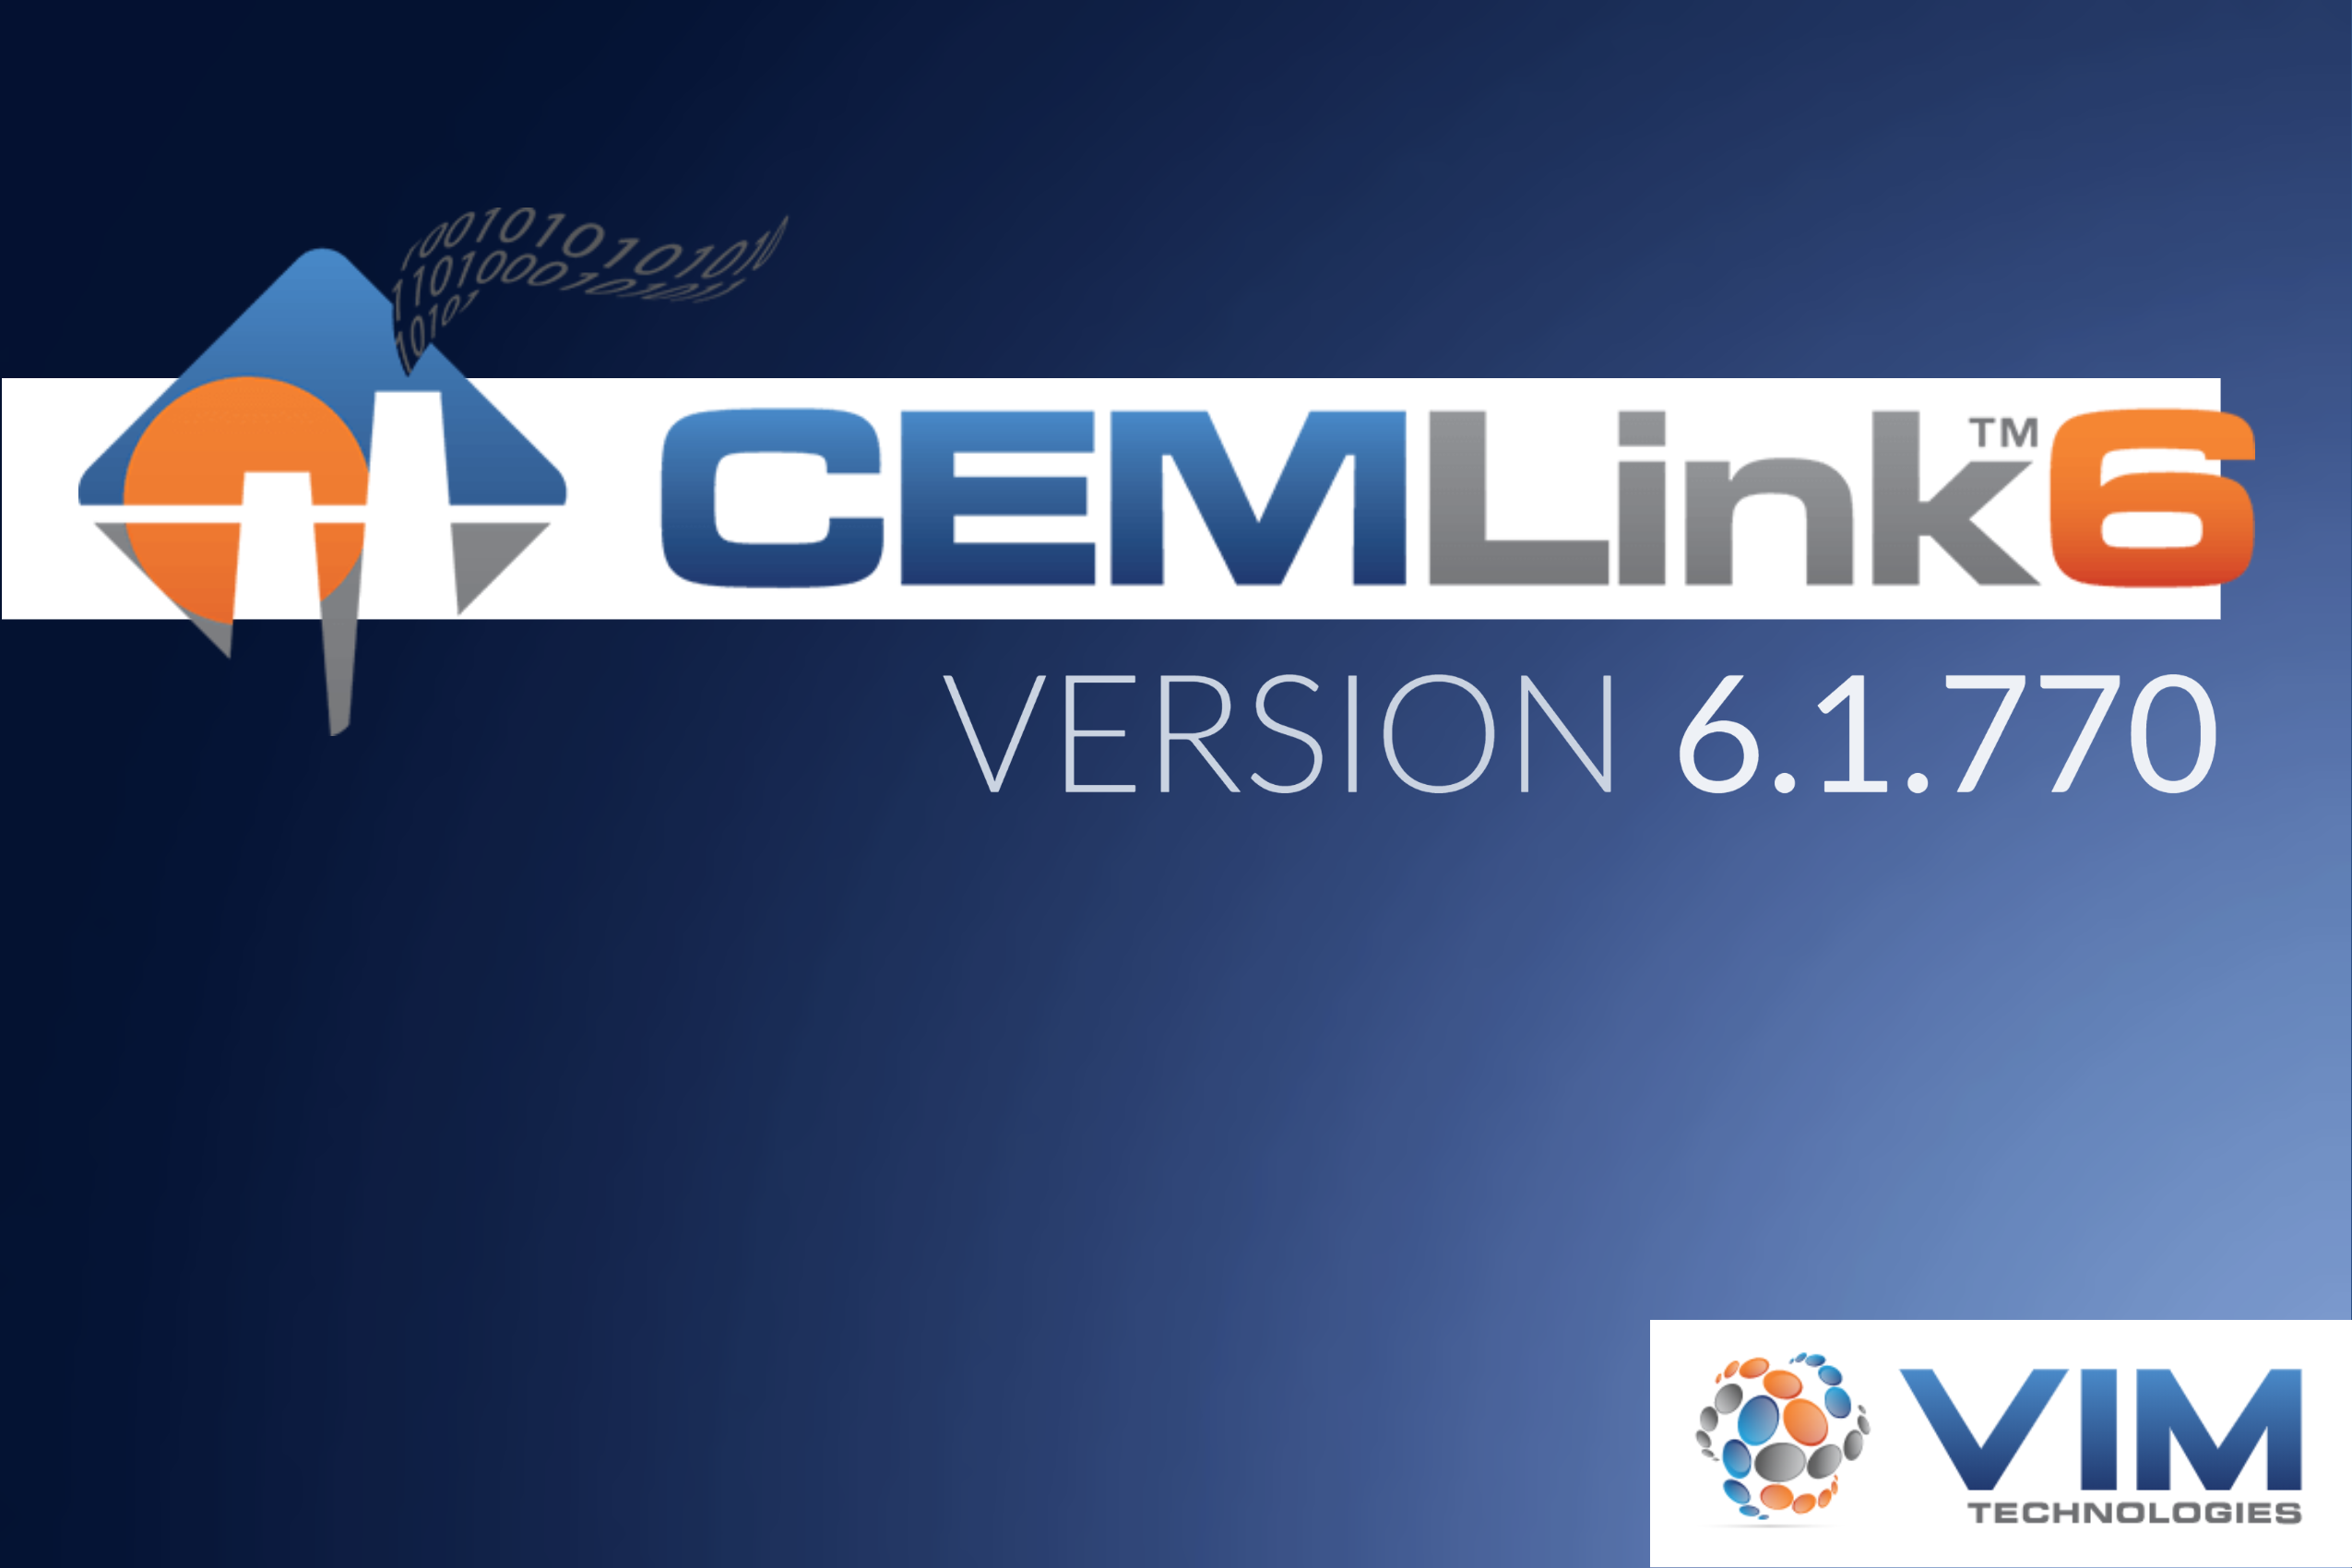 CEMLink6 Version 6.1.770 Now Available